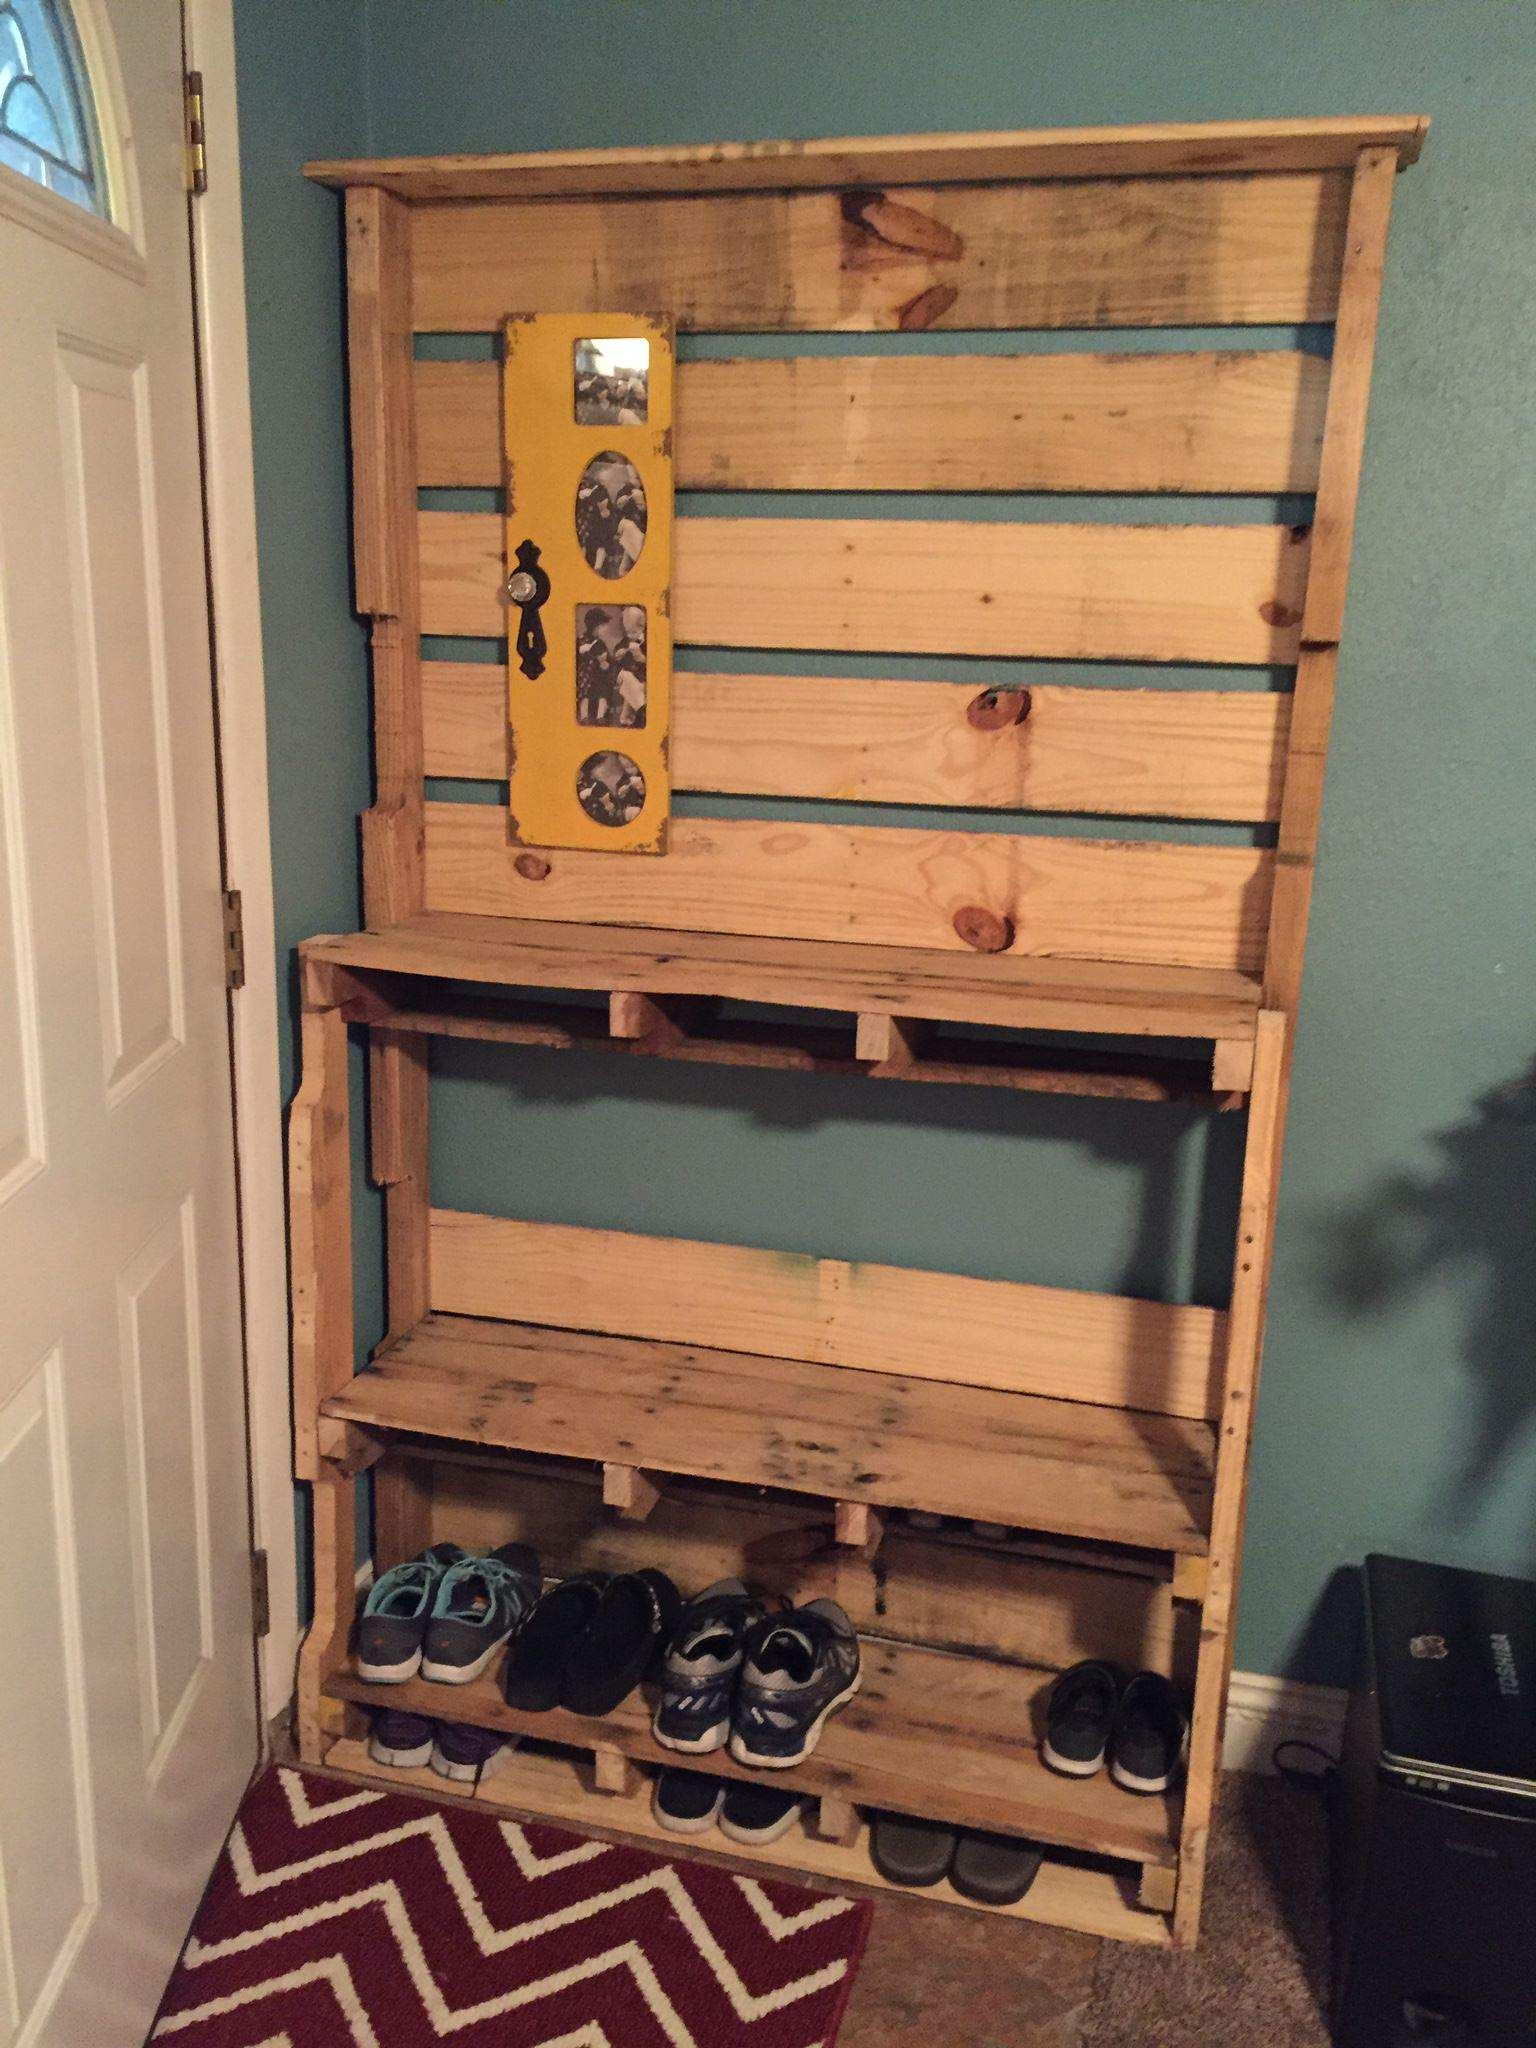 diy pallet shoe rack. behind the door shoe rack with a shelf and place to hang keys, etc diy pallet